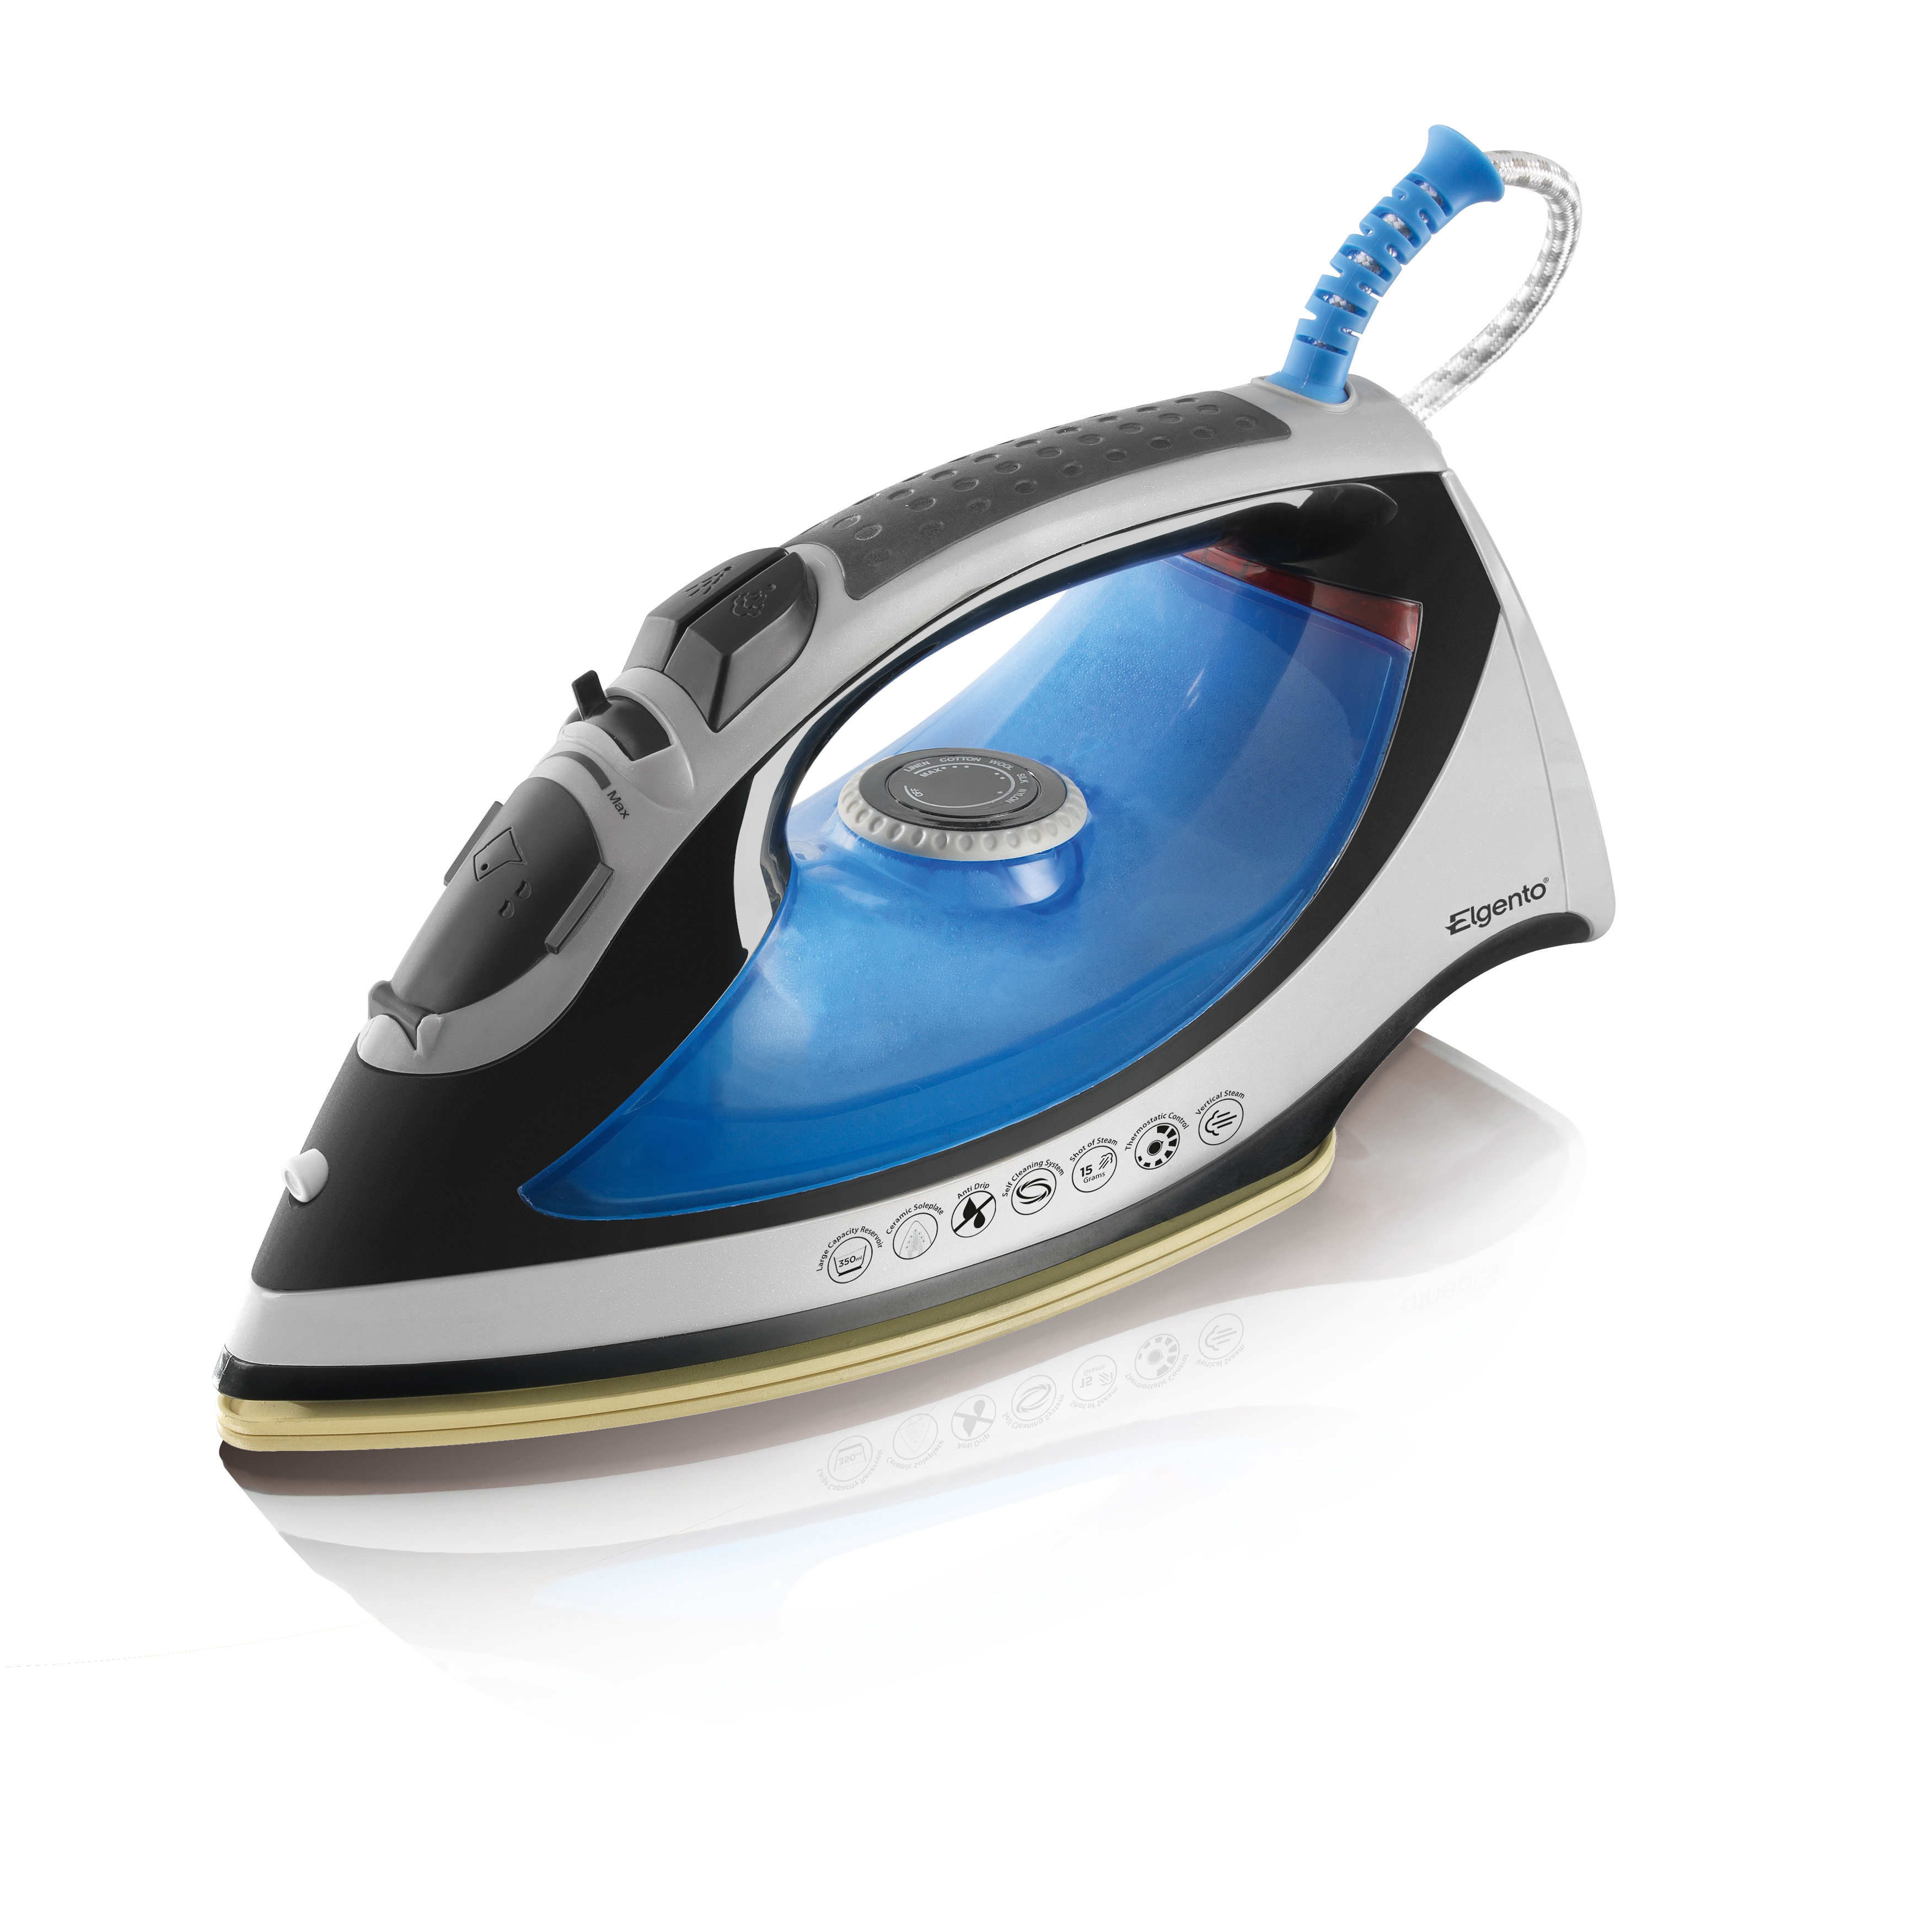 Elgento 2600W Steam Iron / No Colour